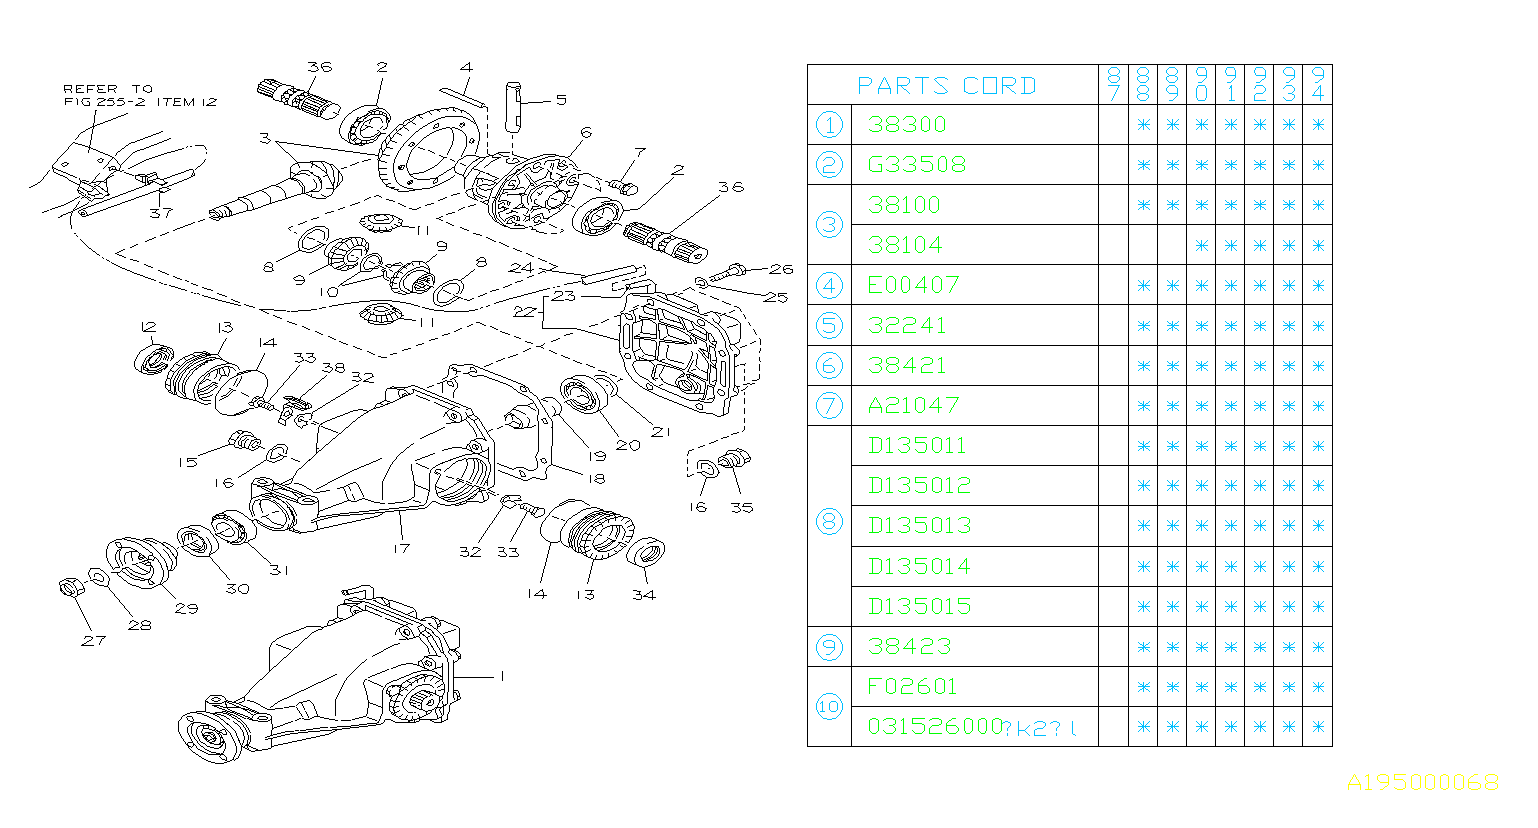 Wiring Diagram Subaru Justy